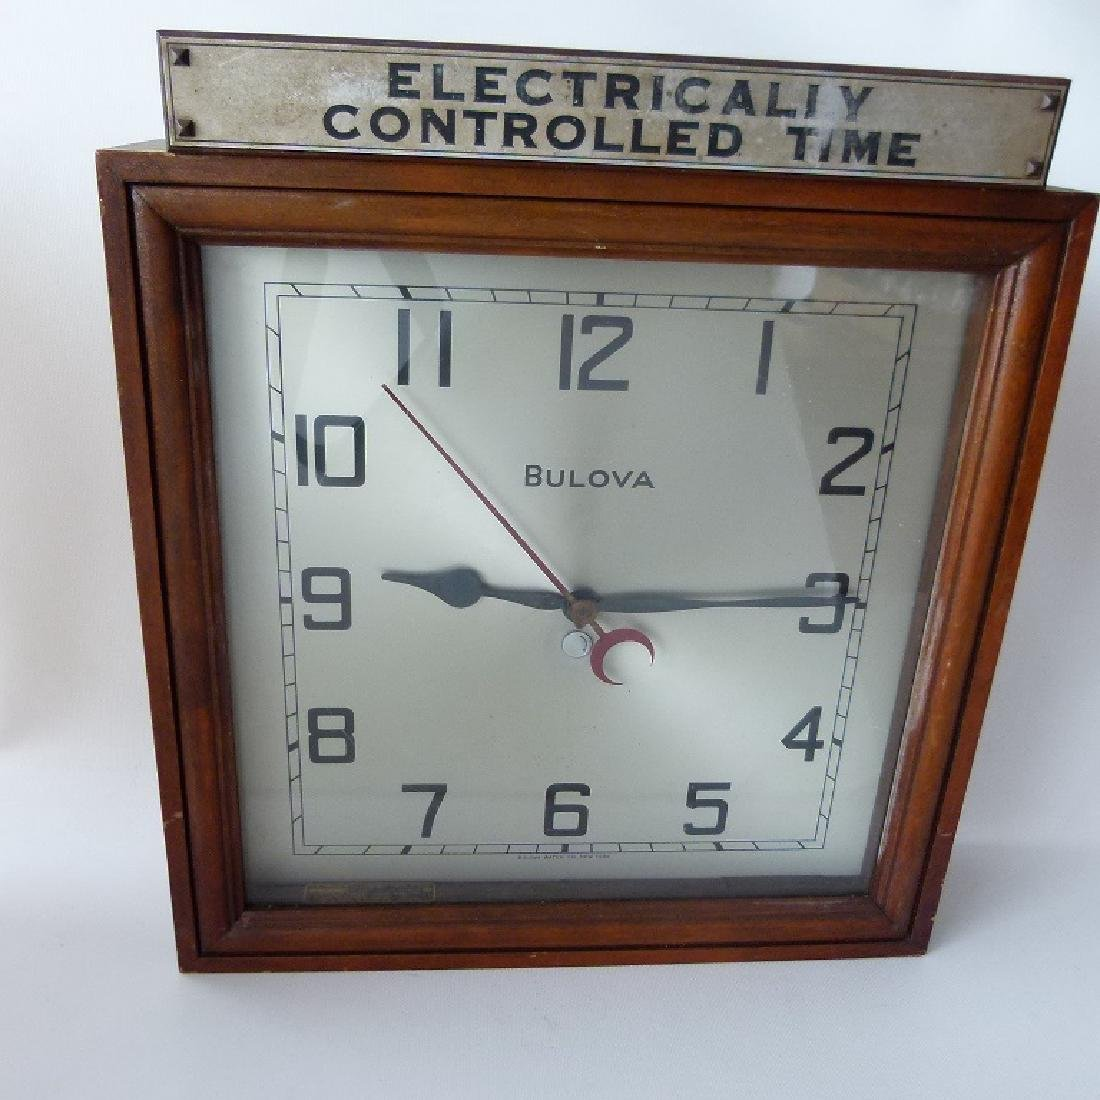 RARE BULOVA ELECTRONICAL CONTROLLED TIME CLOCK